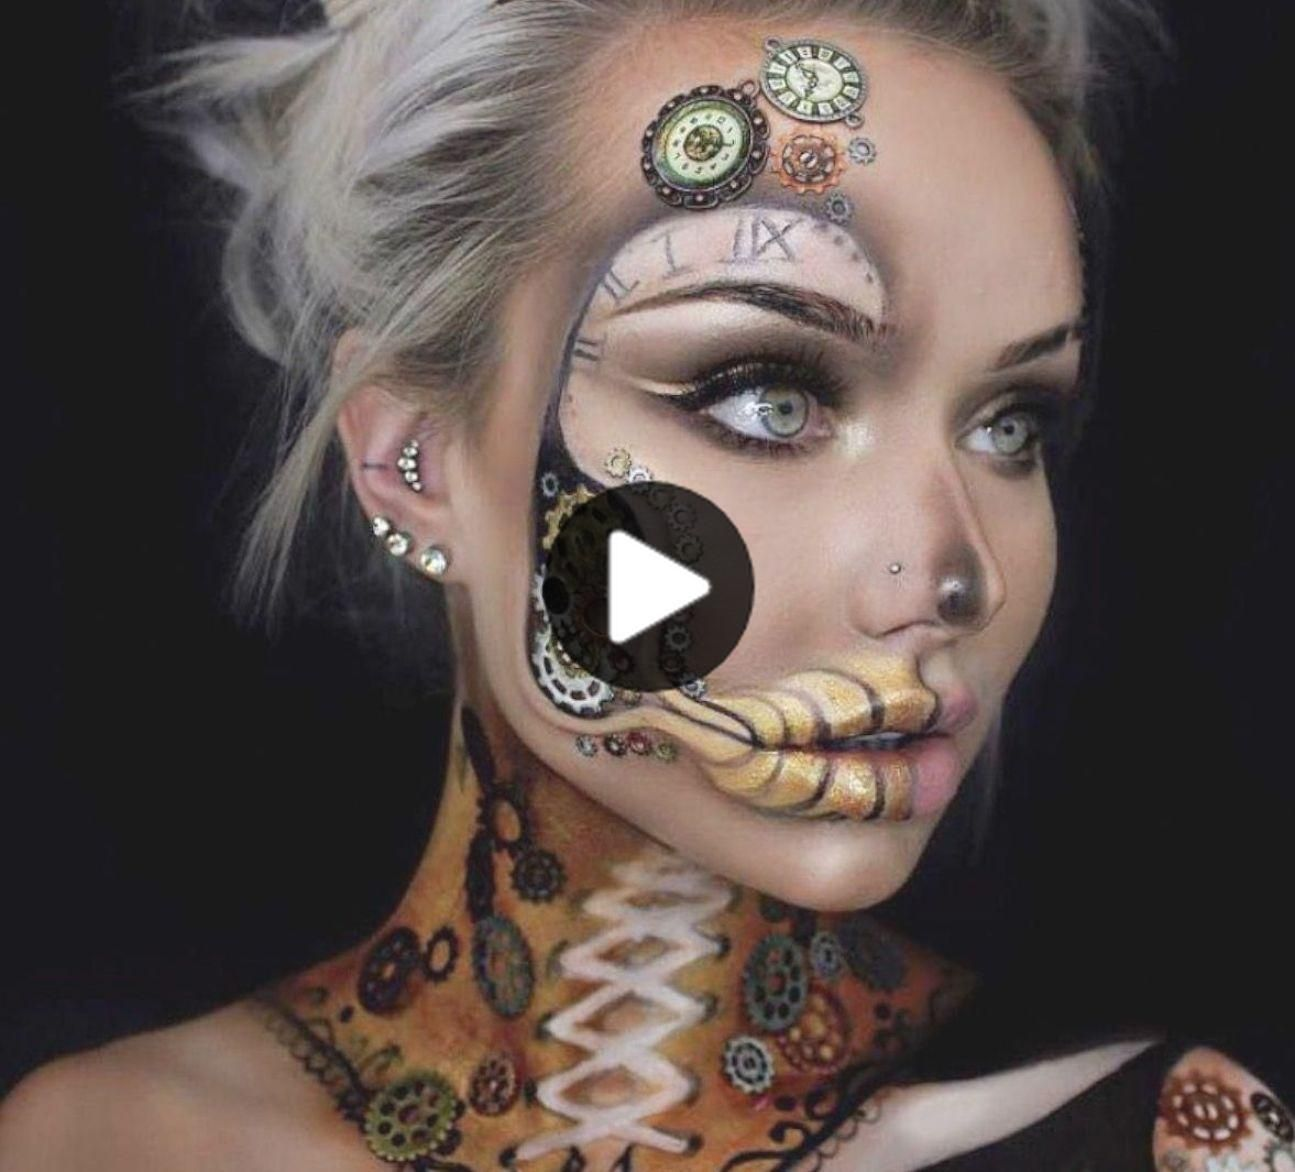 41 Most Jaw-Dropping Halloween Makeup Ideas That Are Still Pretty: Awesome Halloween Makeup – Click